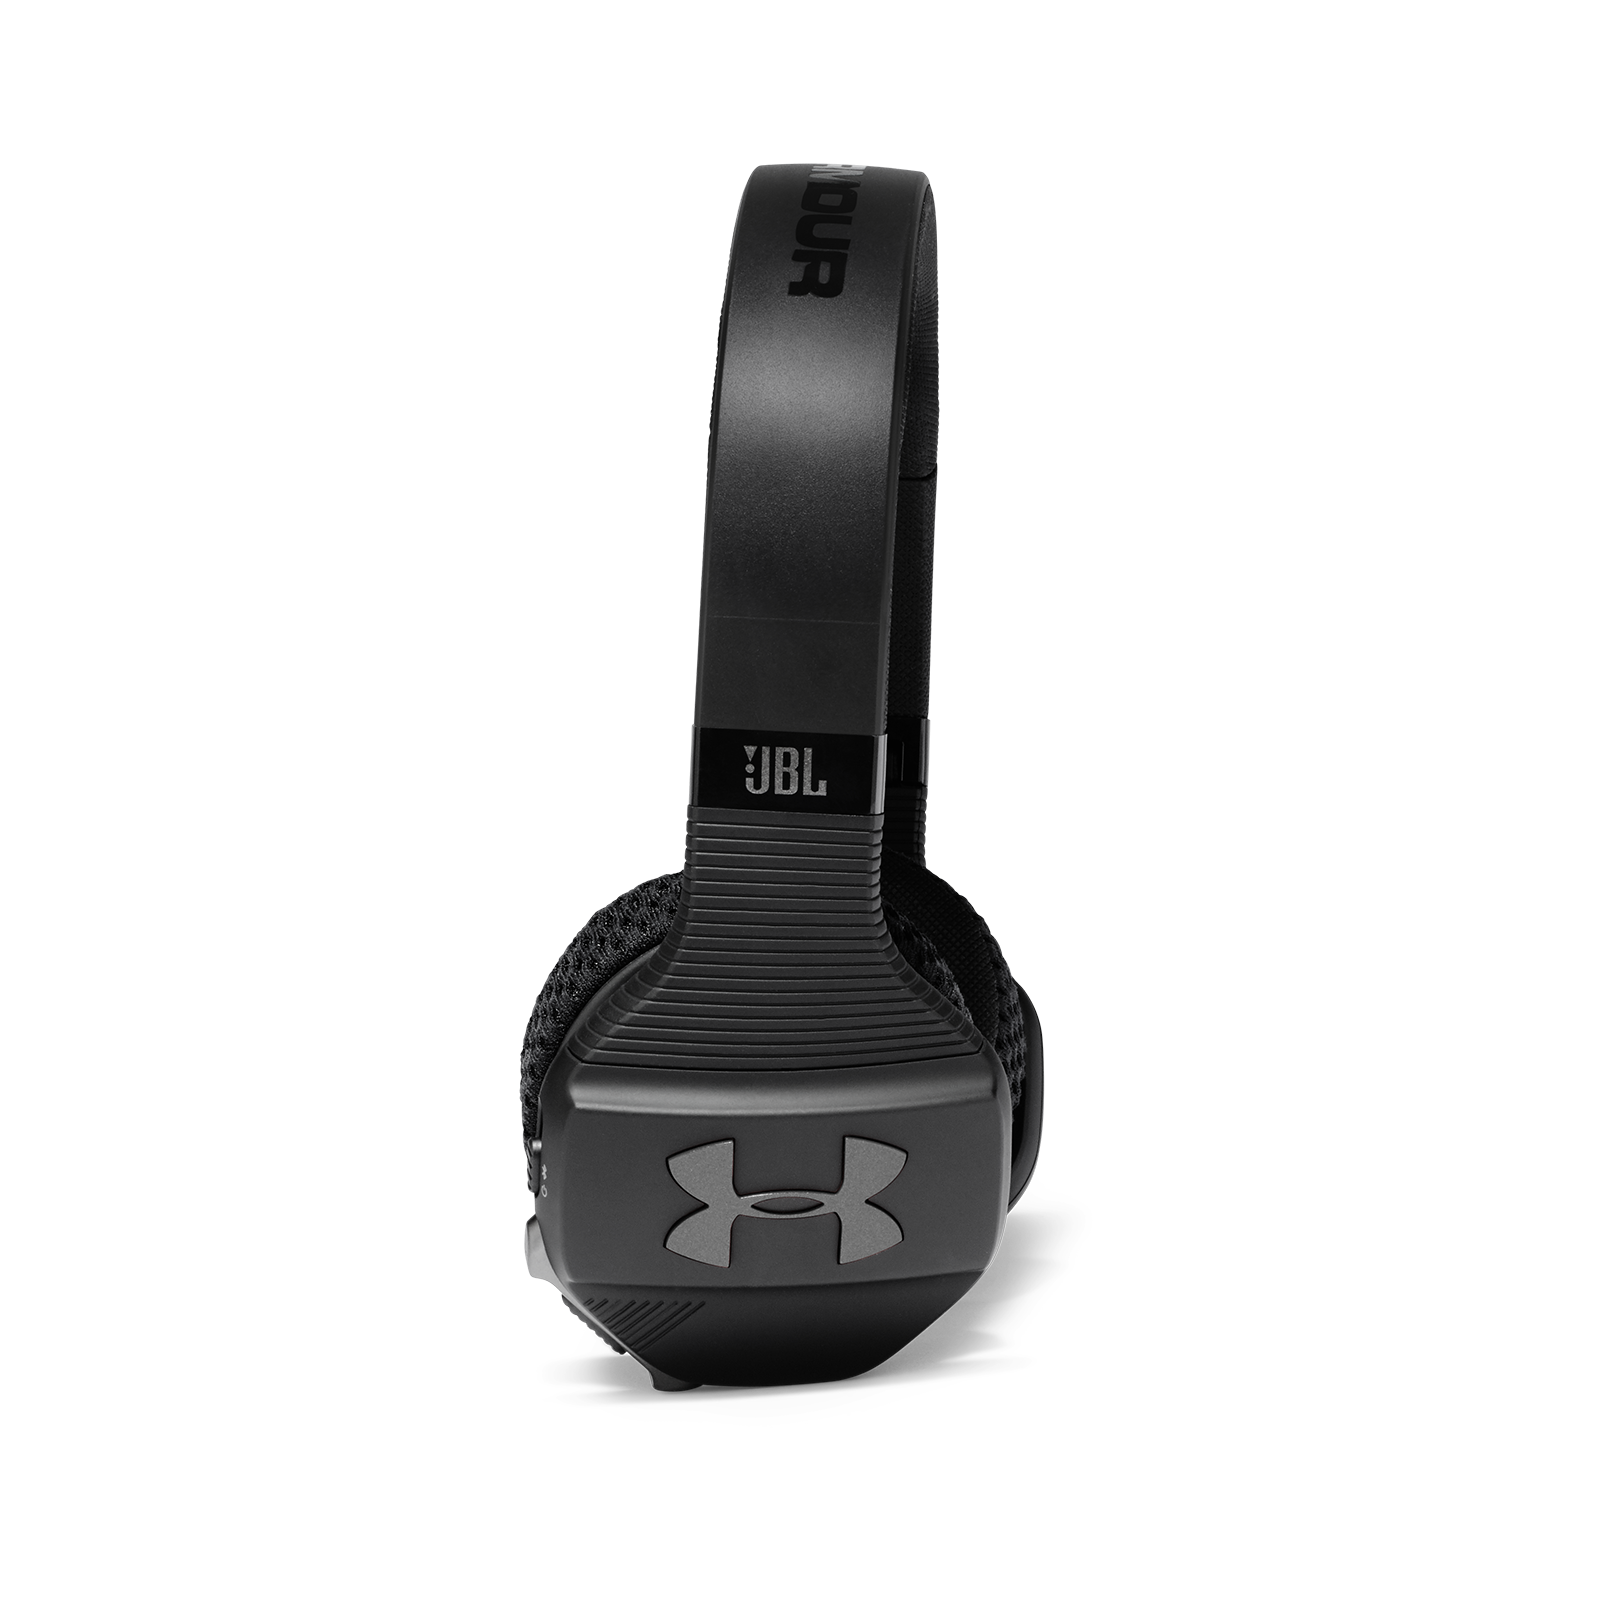 UA Sport Wireless Train – Engineered by JBL - Black - Wireless on-ear headphone built for the gym - Detailshot 1